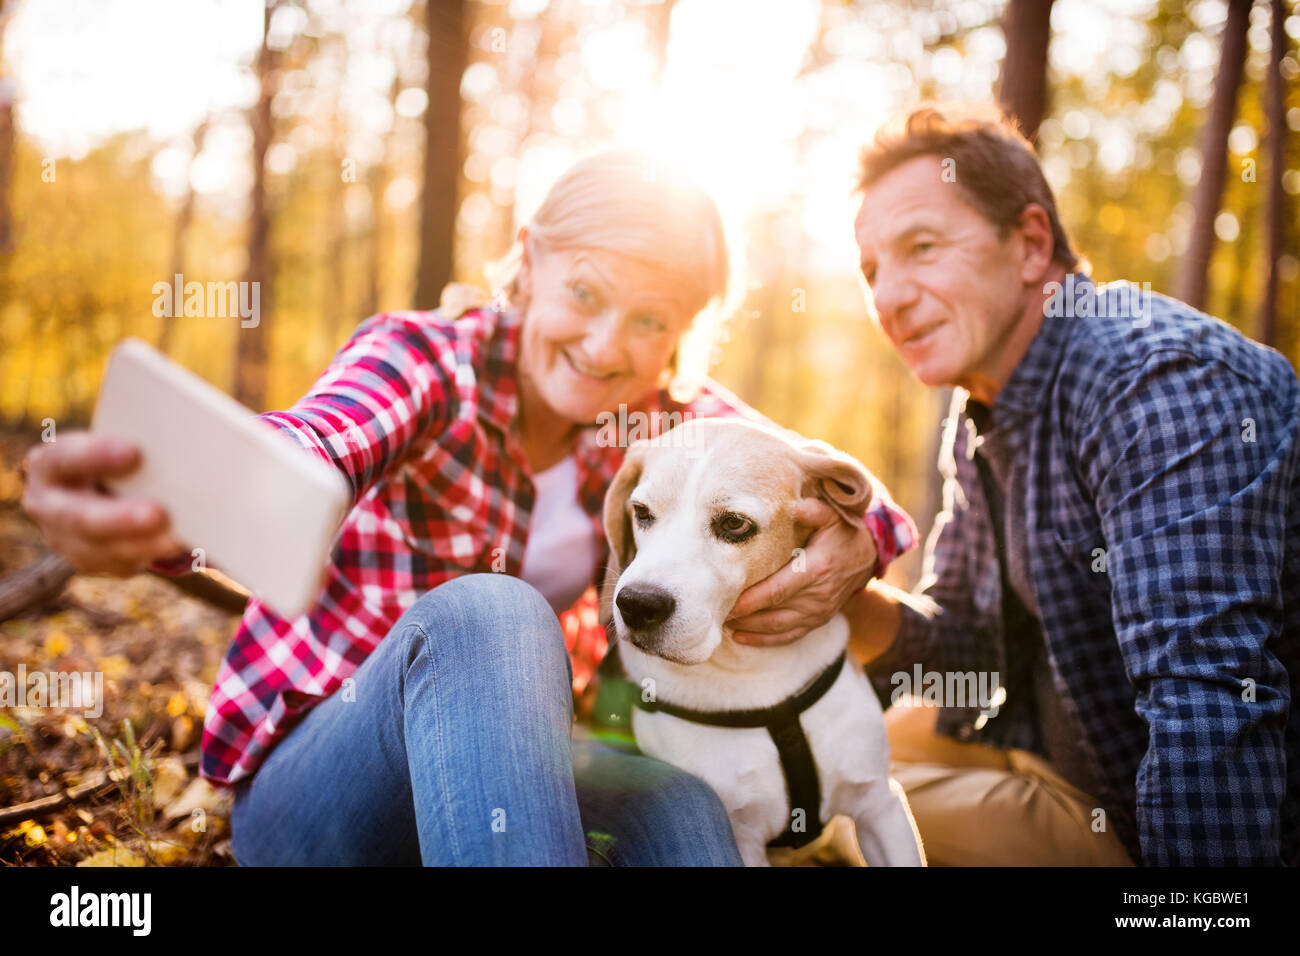 Senior couple with dog on a walk in an autumn forest. Stock Photo